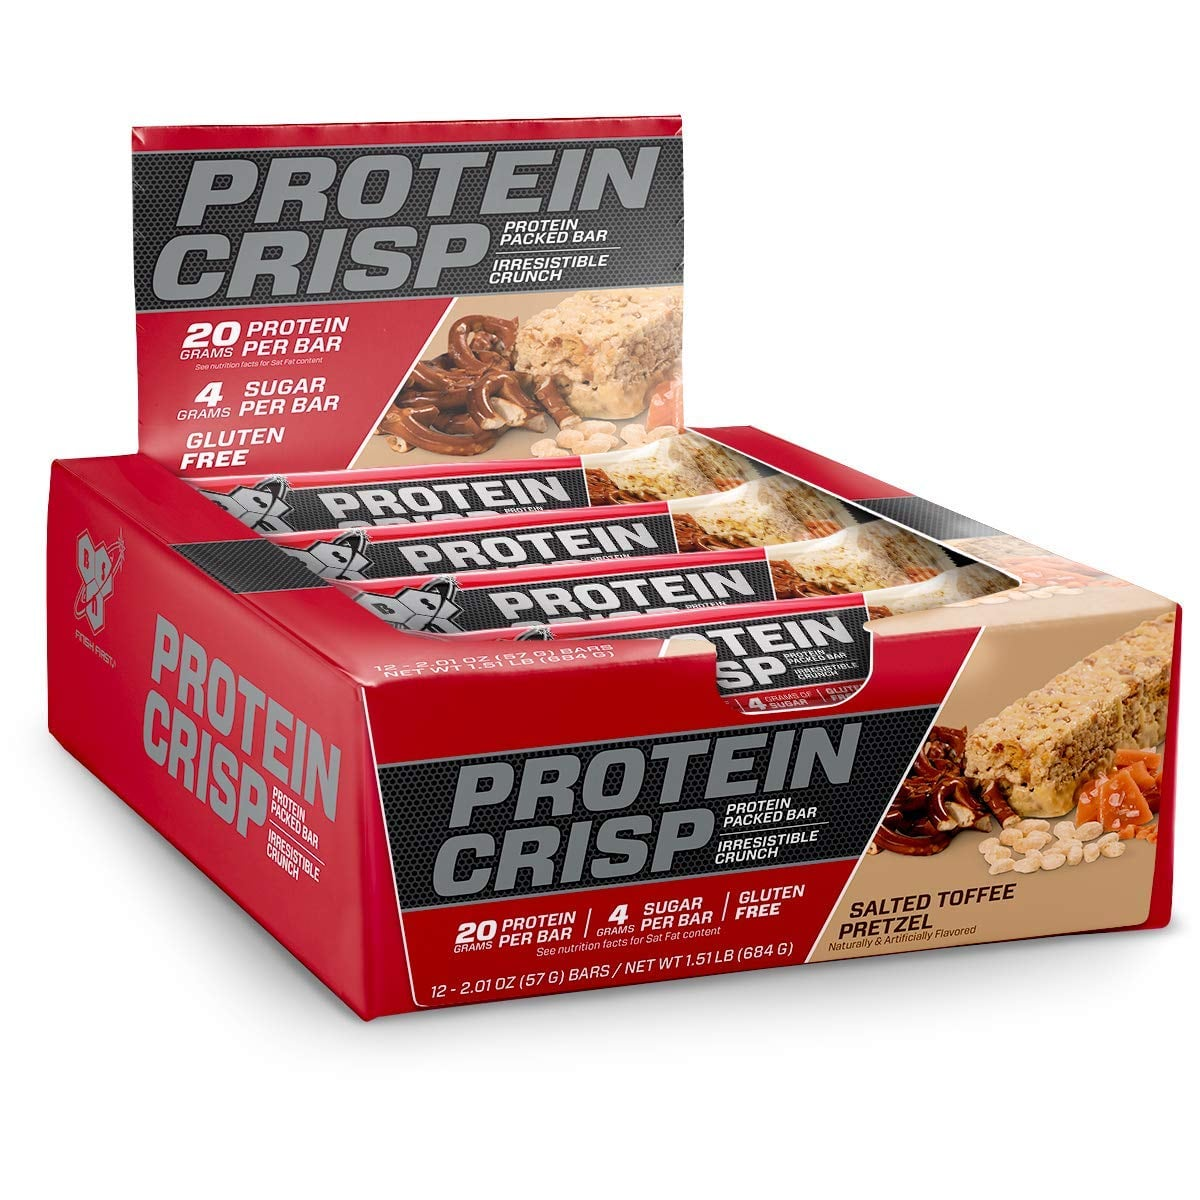 BSN Protein Crisp Bar by Syntha-6 Various Flavors, 12 Count $10-14